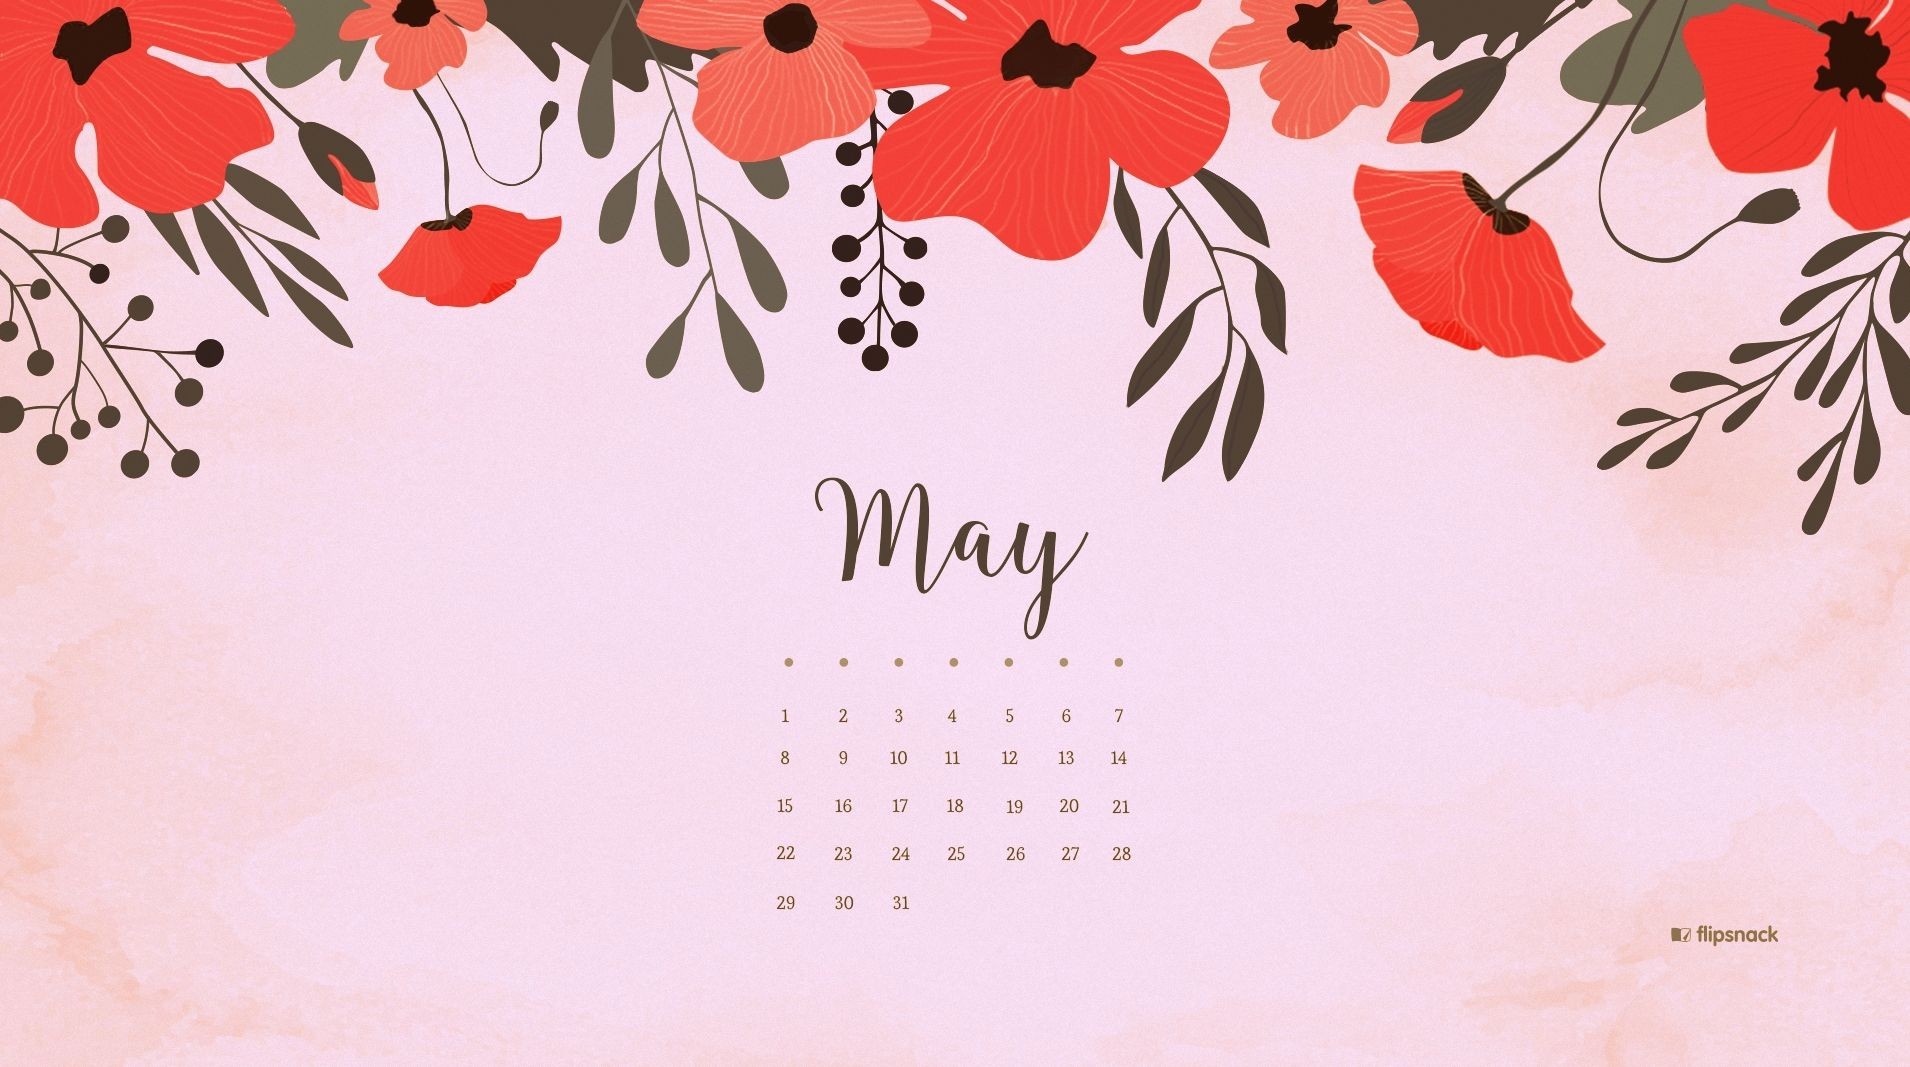 May 2018 Calendar Desktop Wallpaper 2018 Calendars Calendar 1910x1067